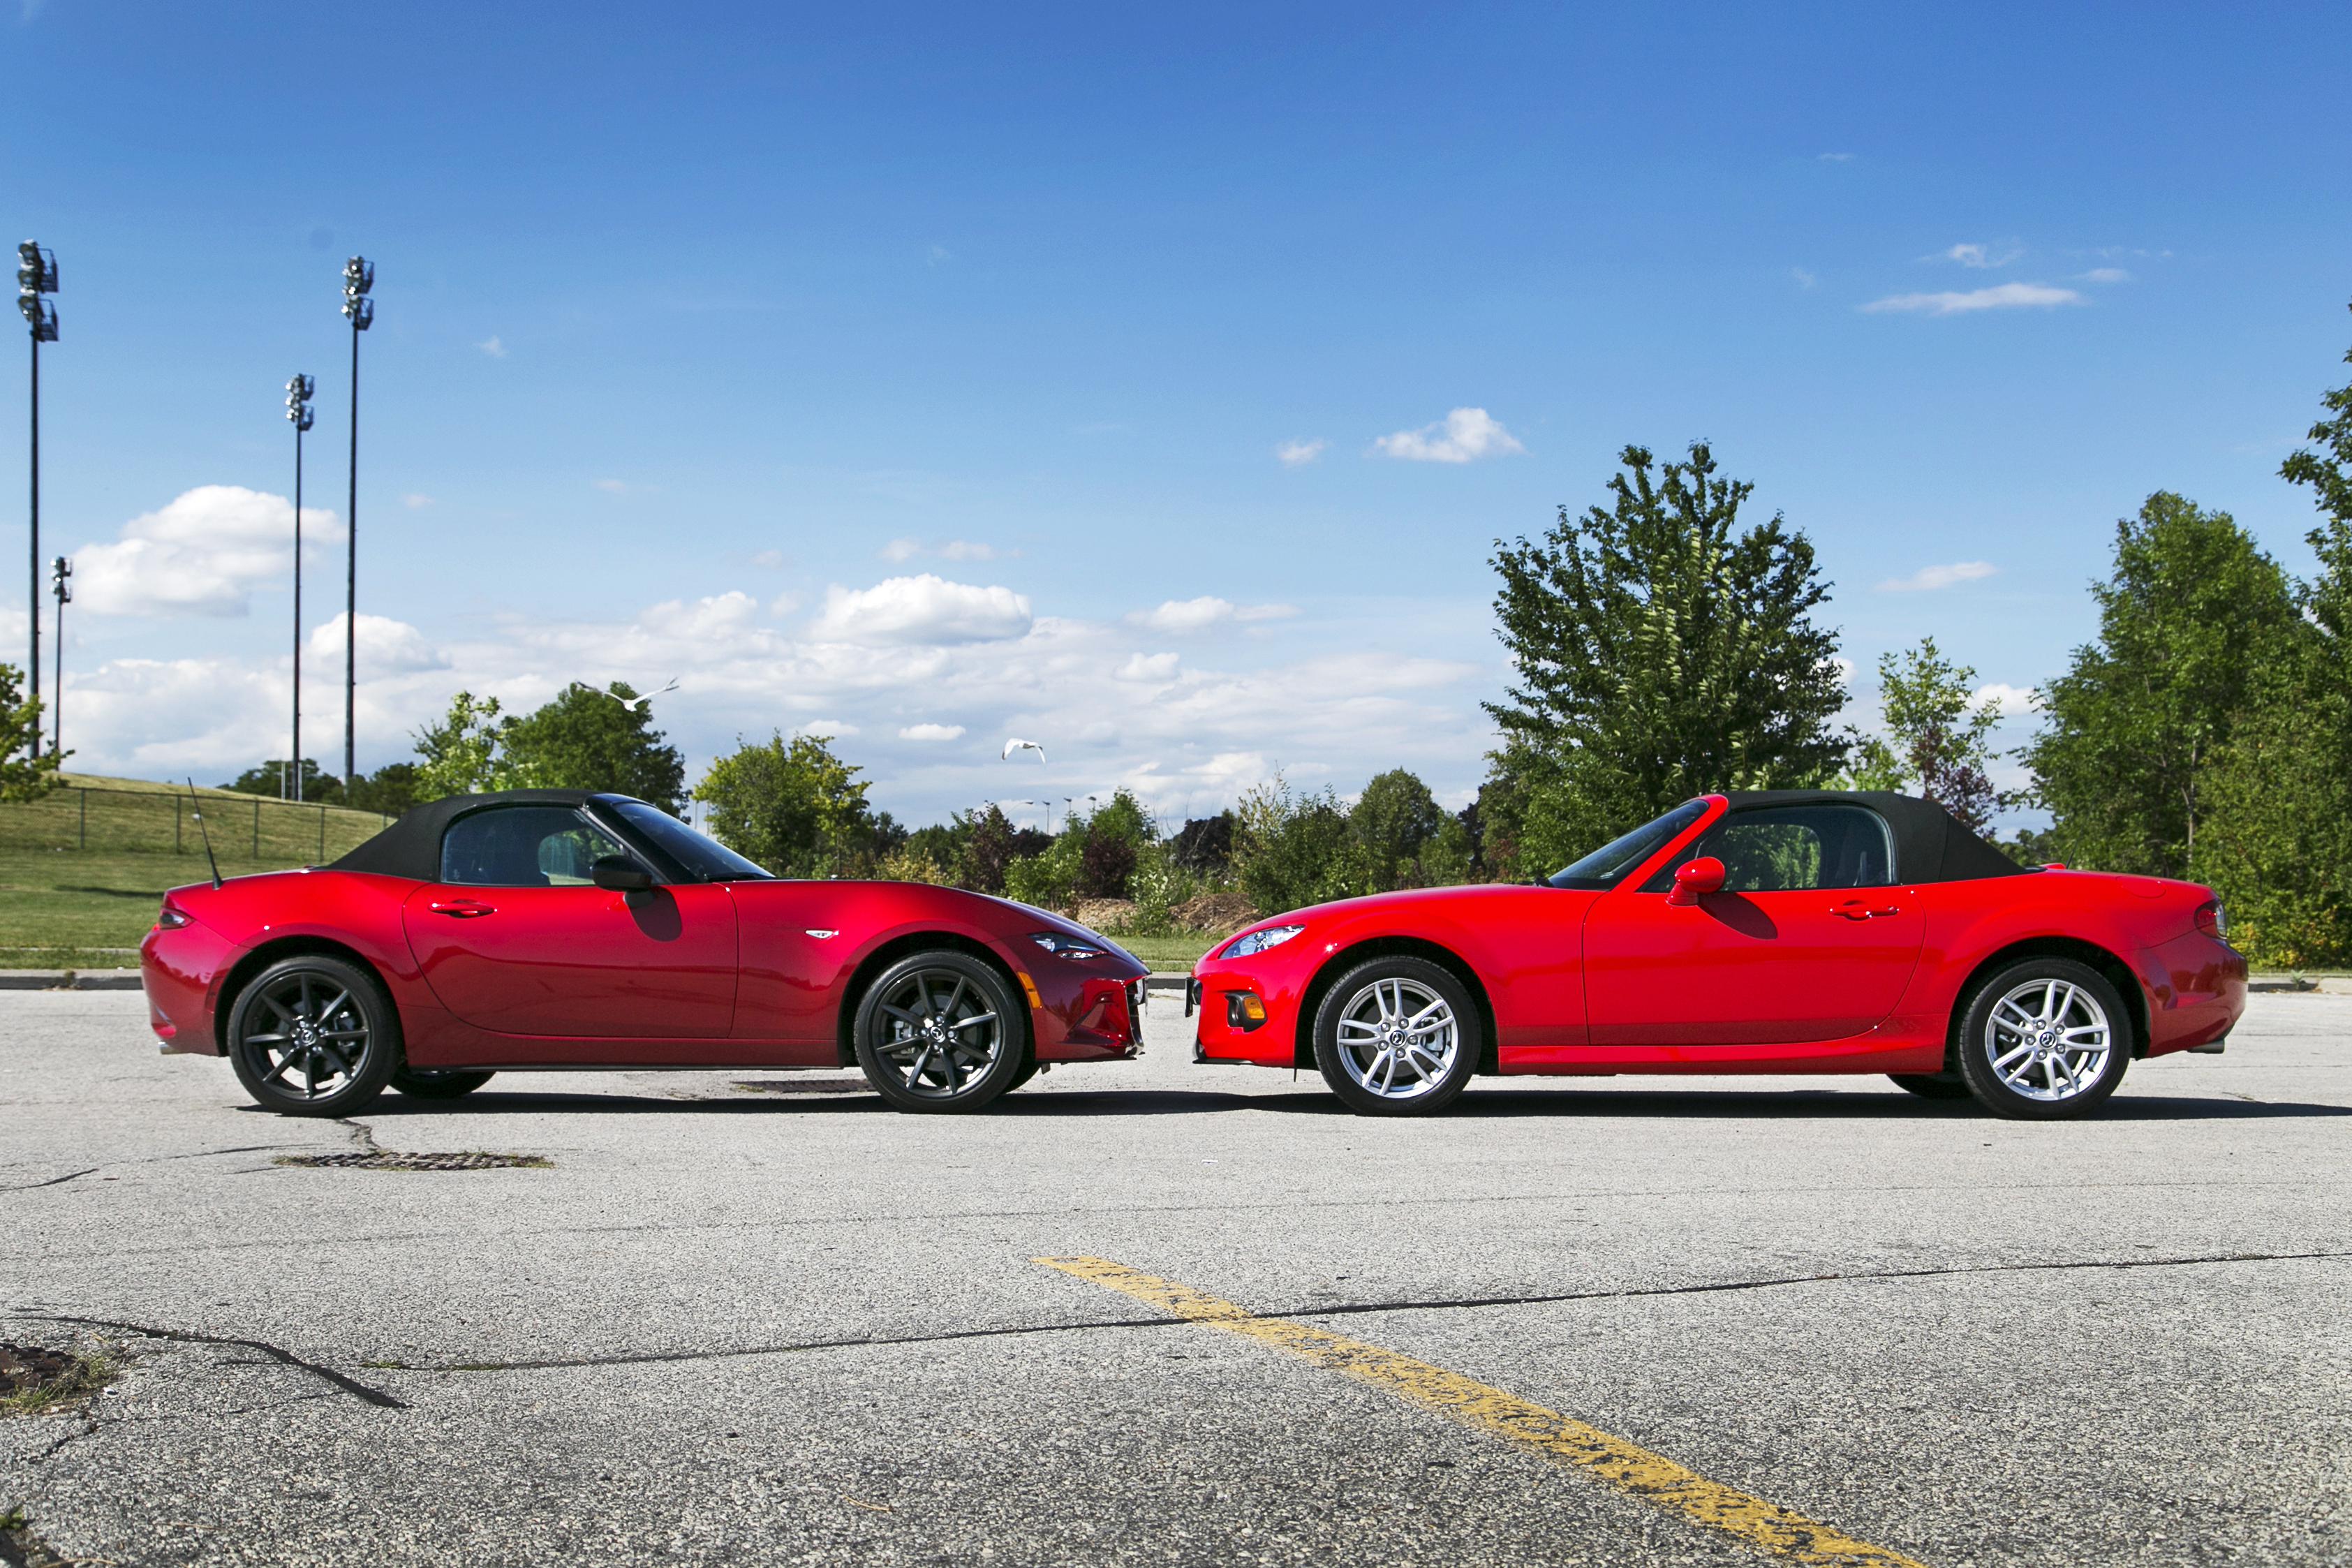 2015 Mazda Mx 5 Vs 2016 Mazda Mx 5 Autos Ca